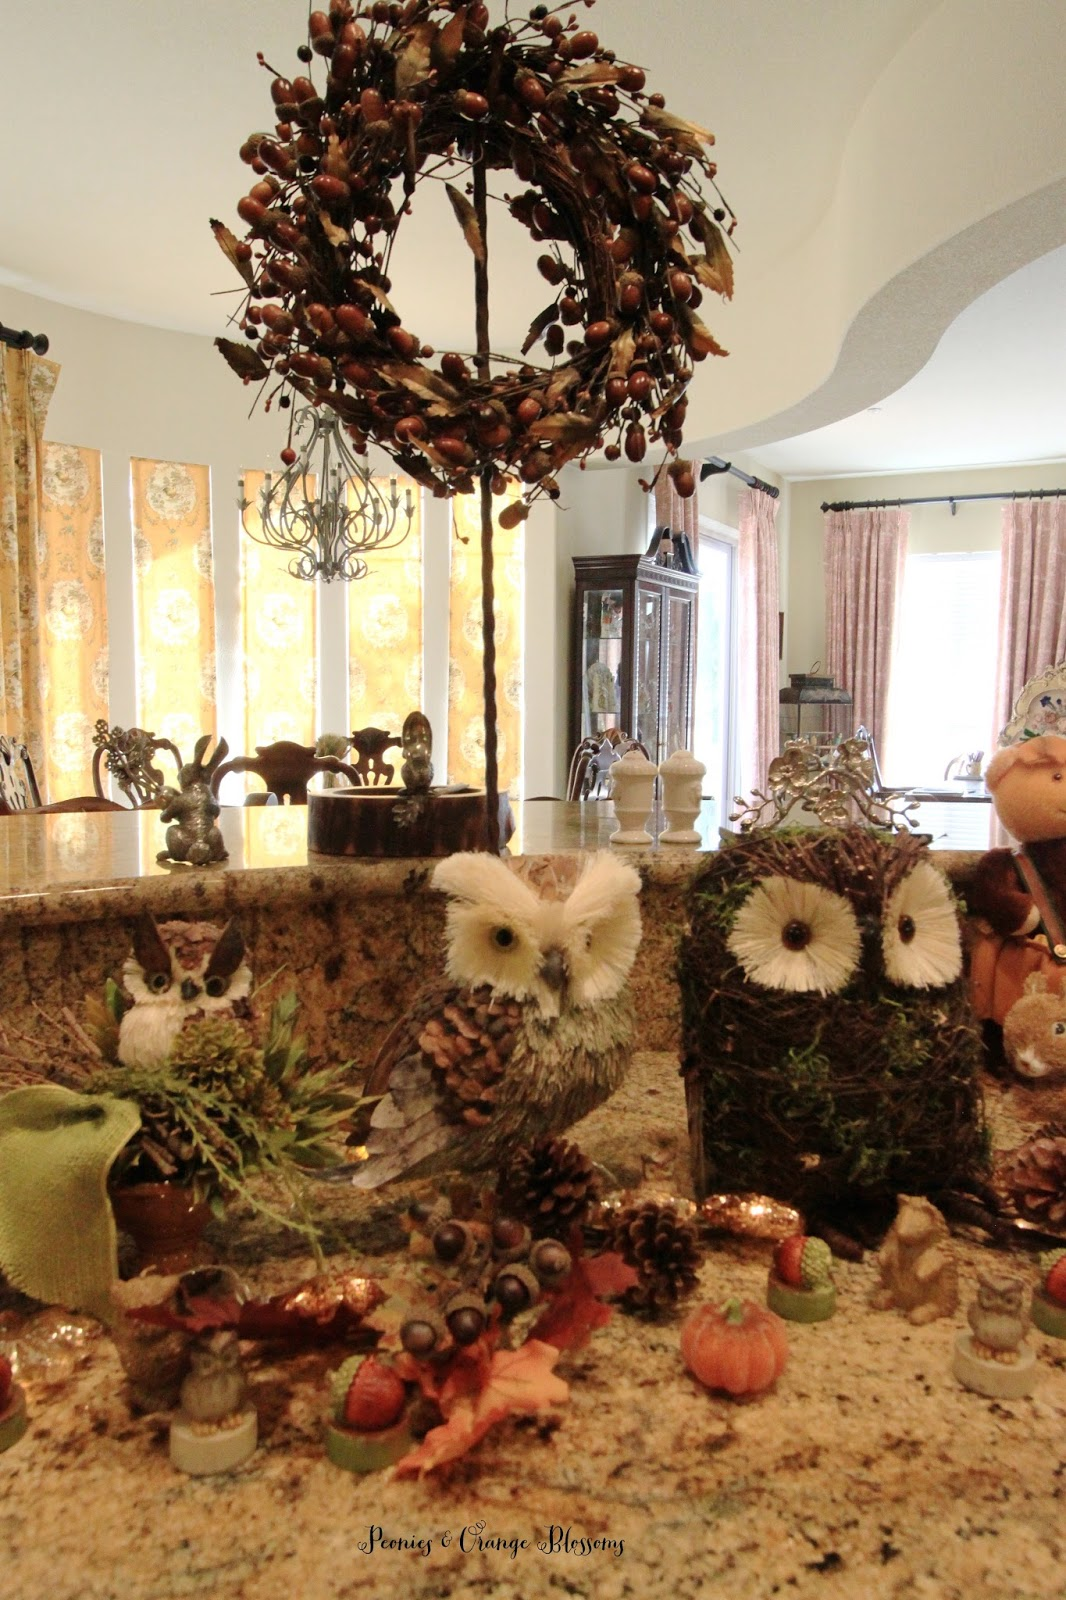 Rustic Fall decor with owls